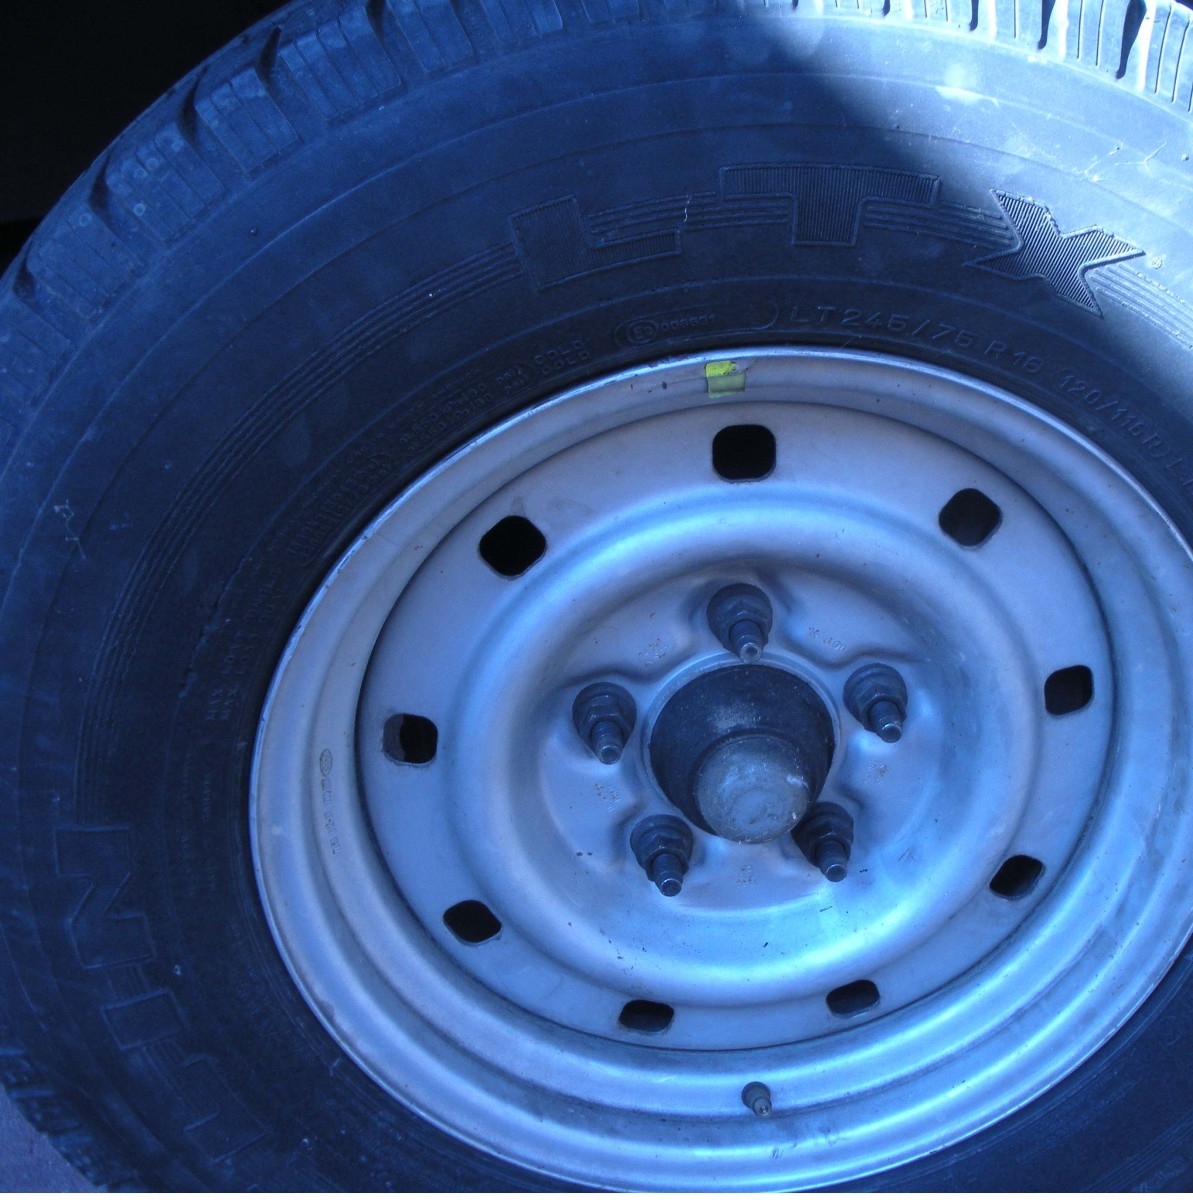 With the spare tire mounted on the truck, the next step is to buy a new tire!